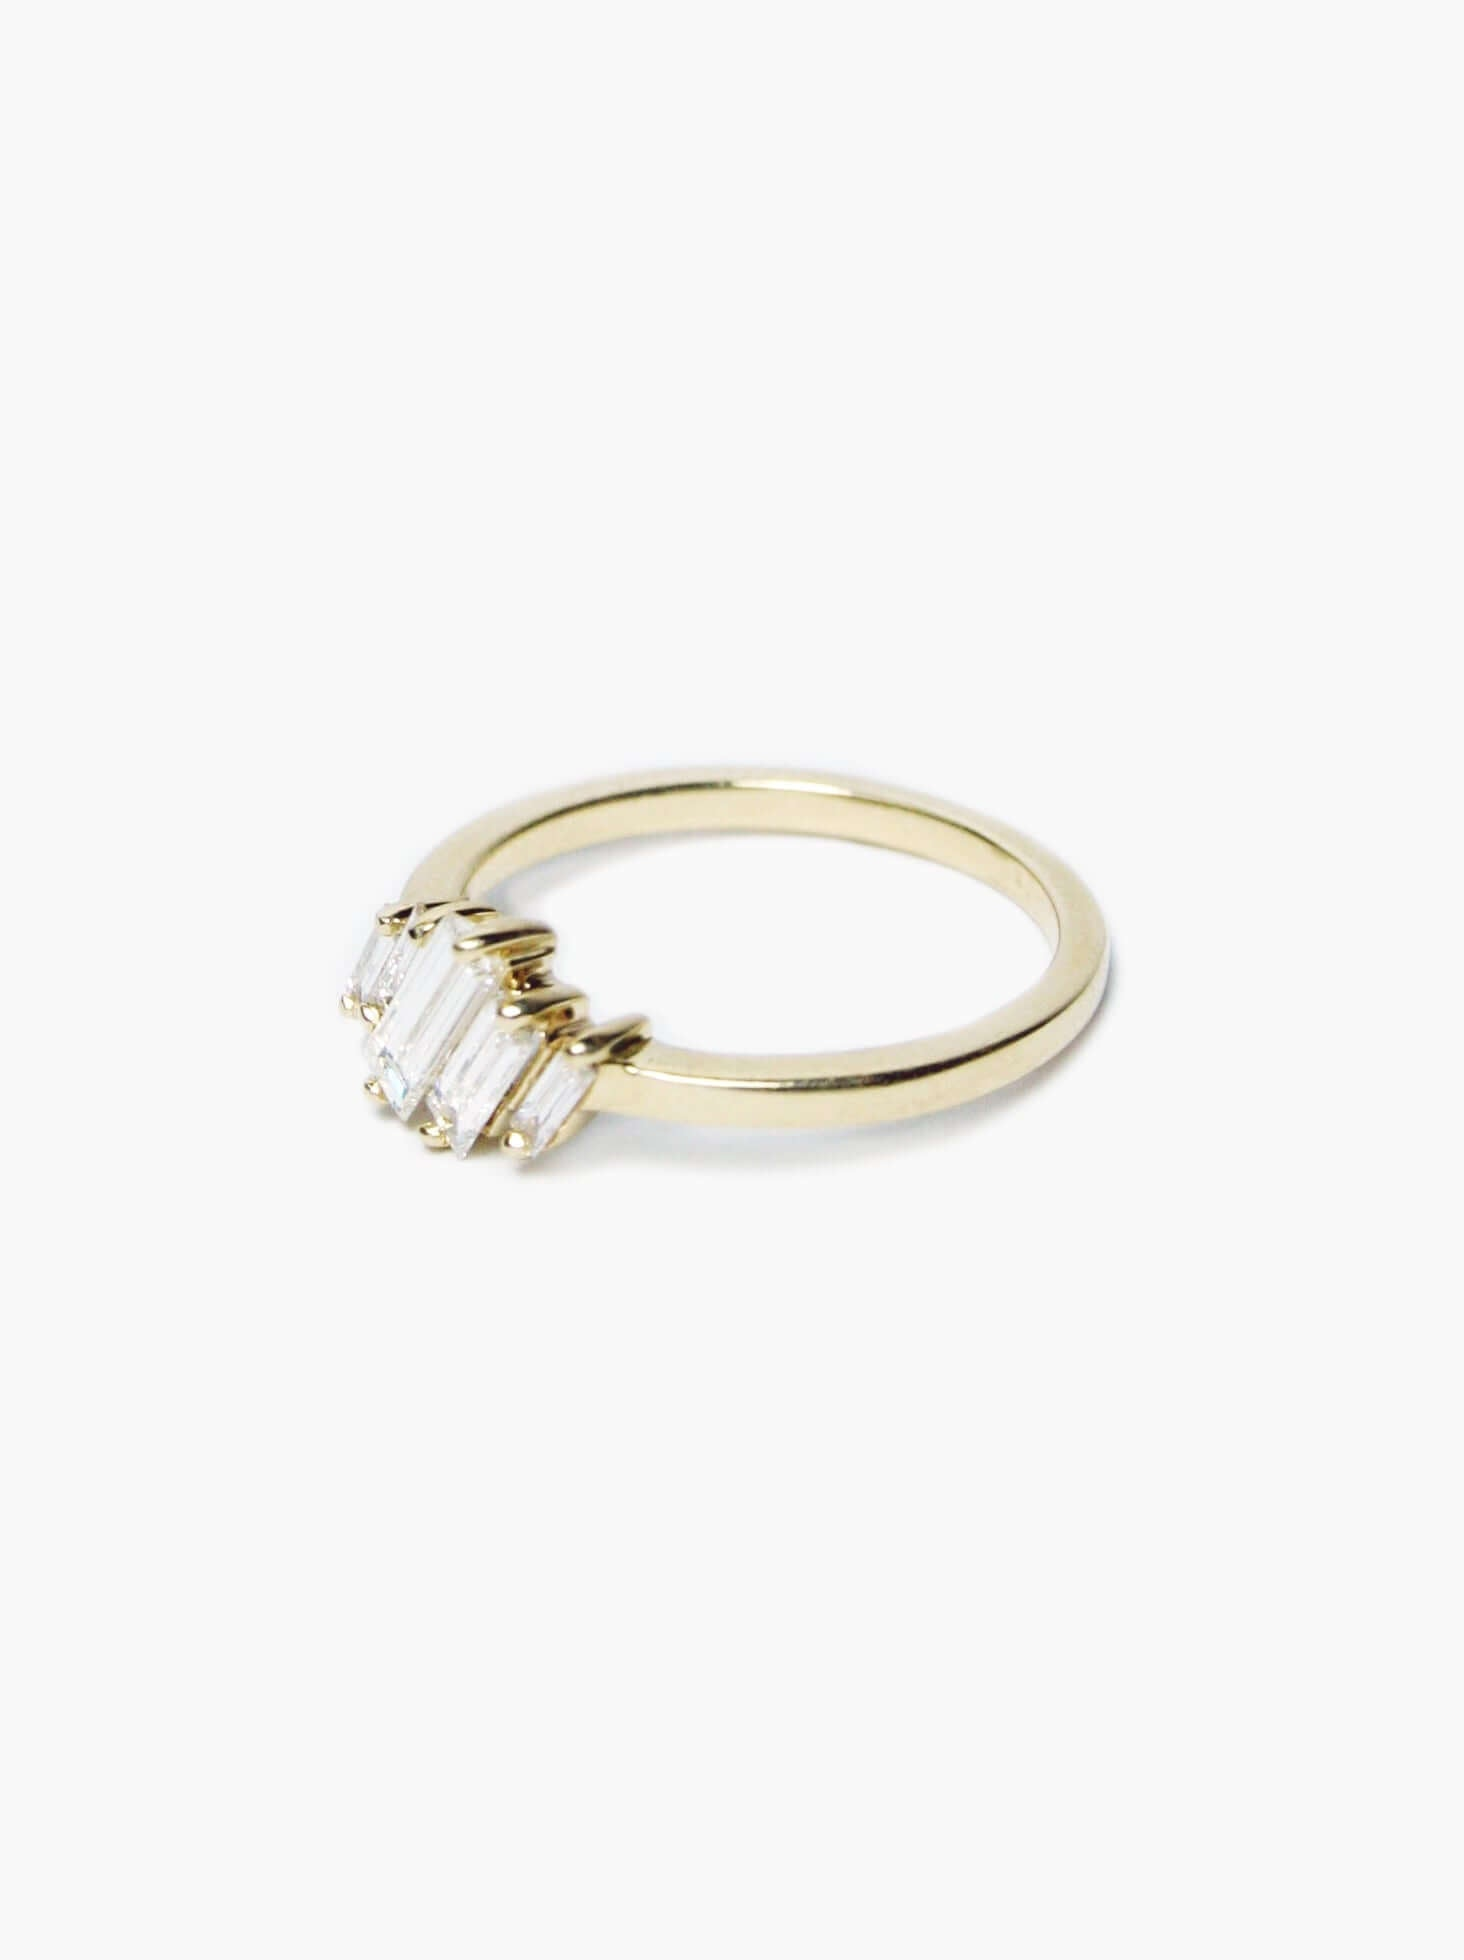 Heather Baguette Ring Yellow Gold, Engagement/Wedding, Macha Studio, Brooklyn NYC